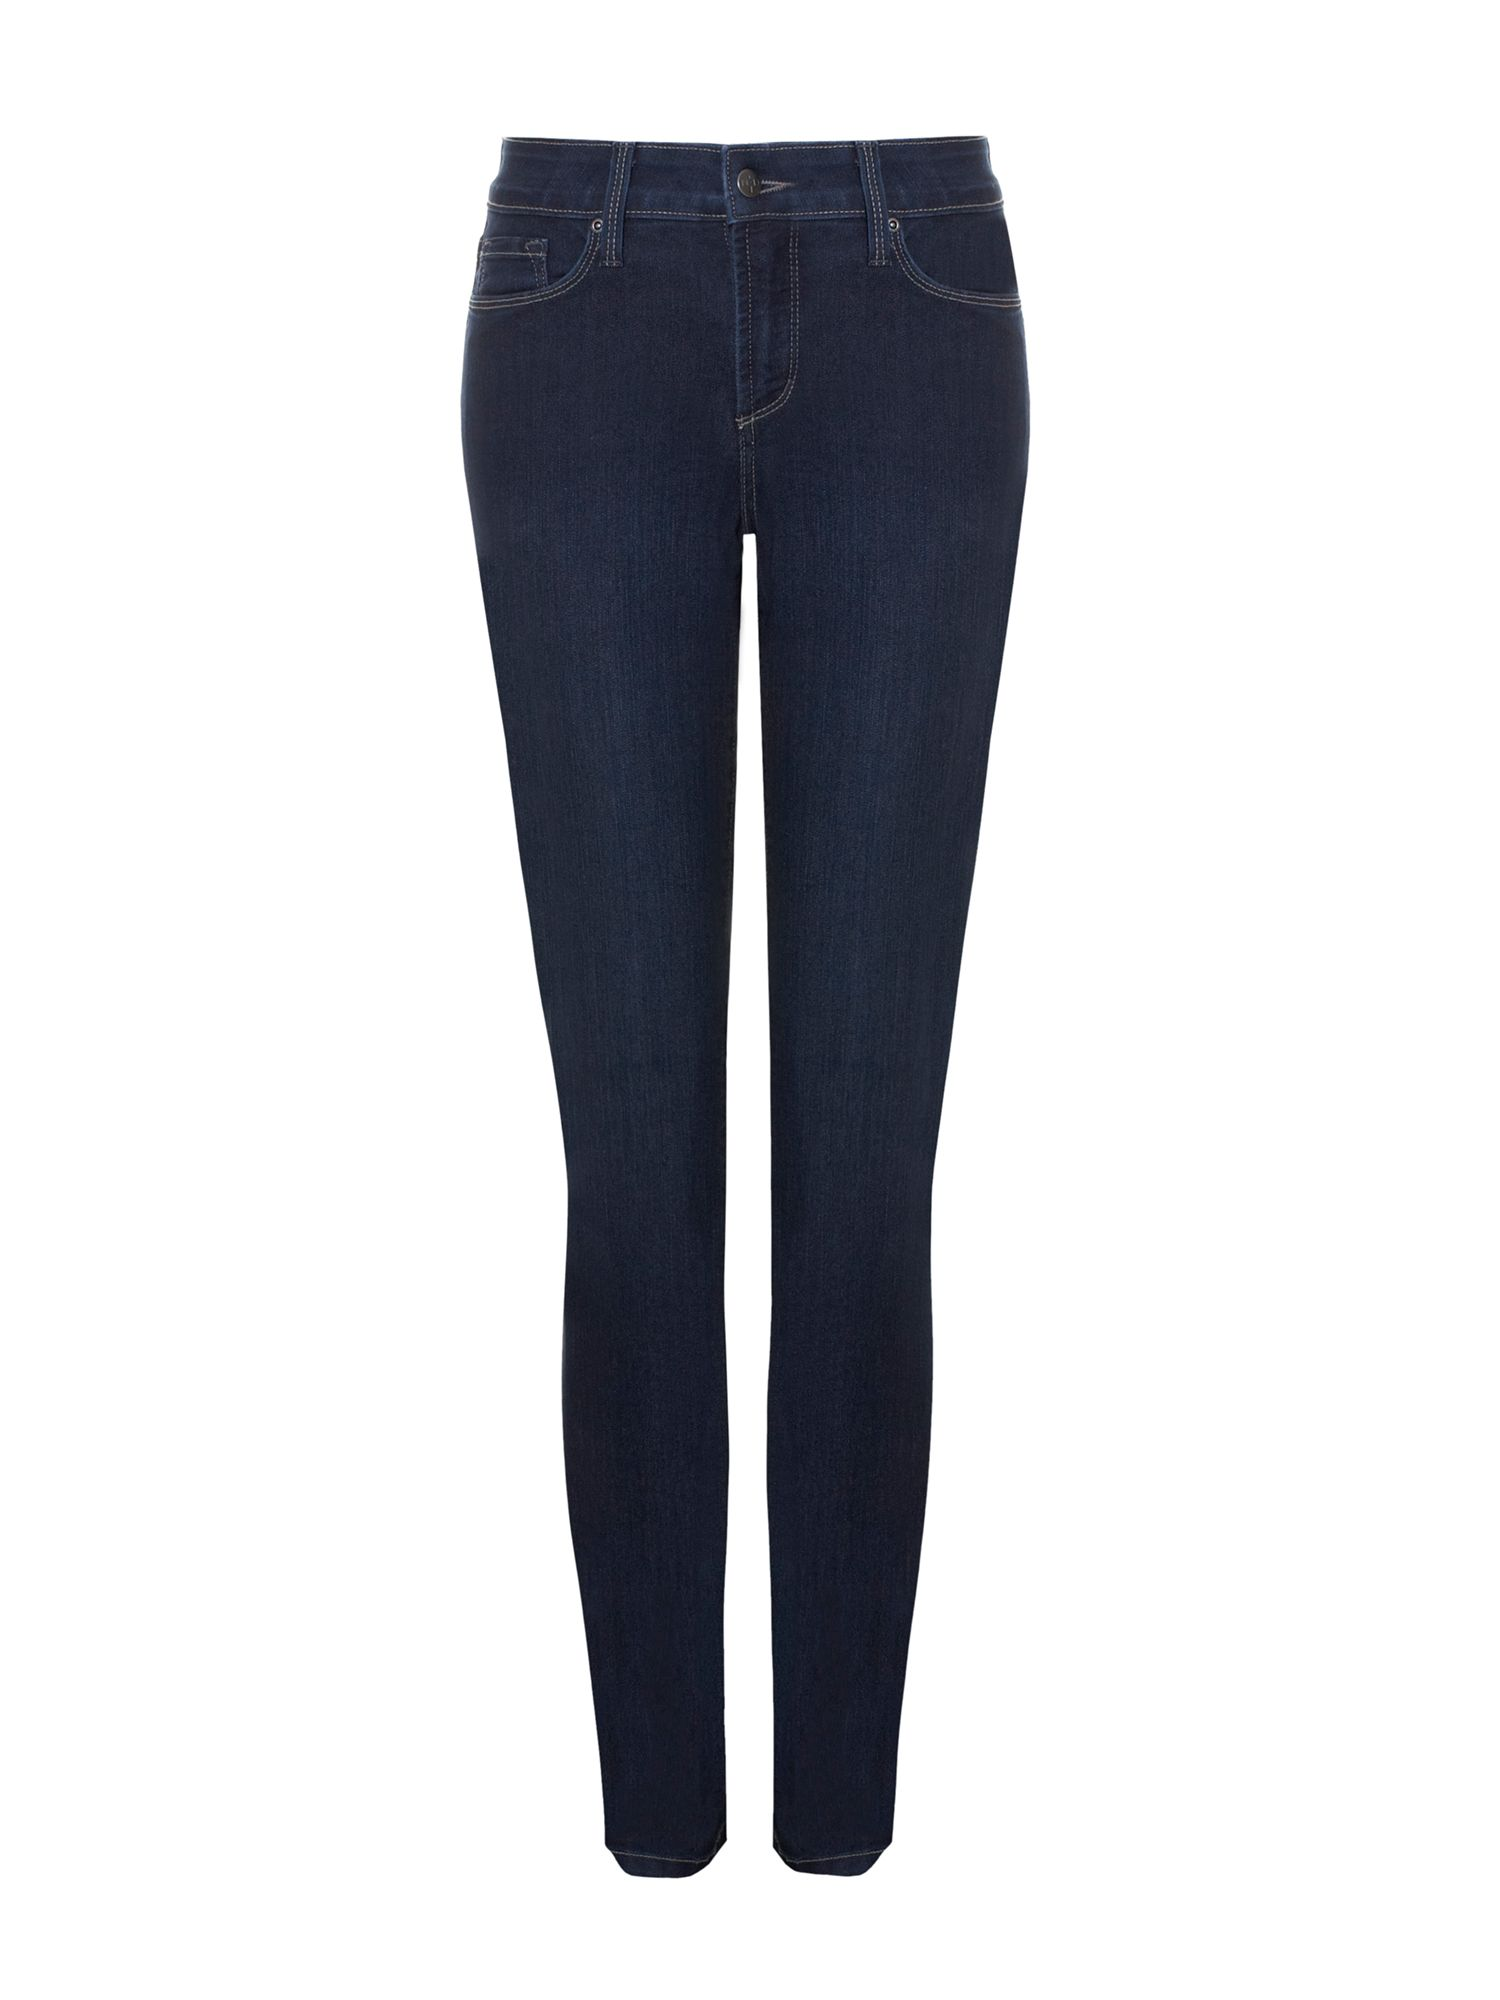 NYDJ Skinny In Lightweight Denim Petite Denim